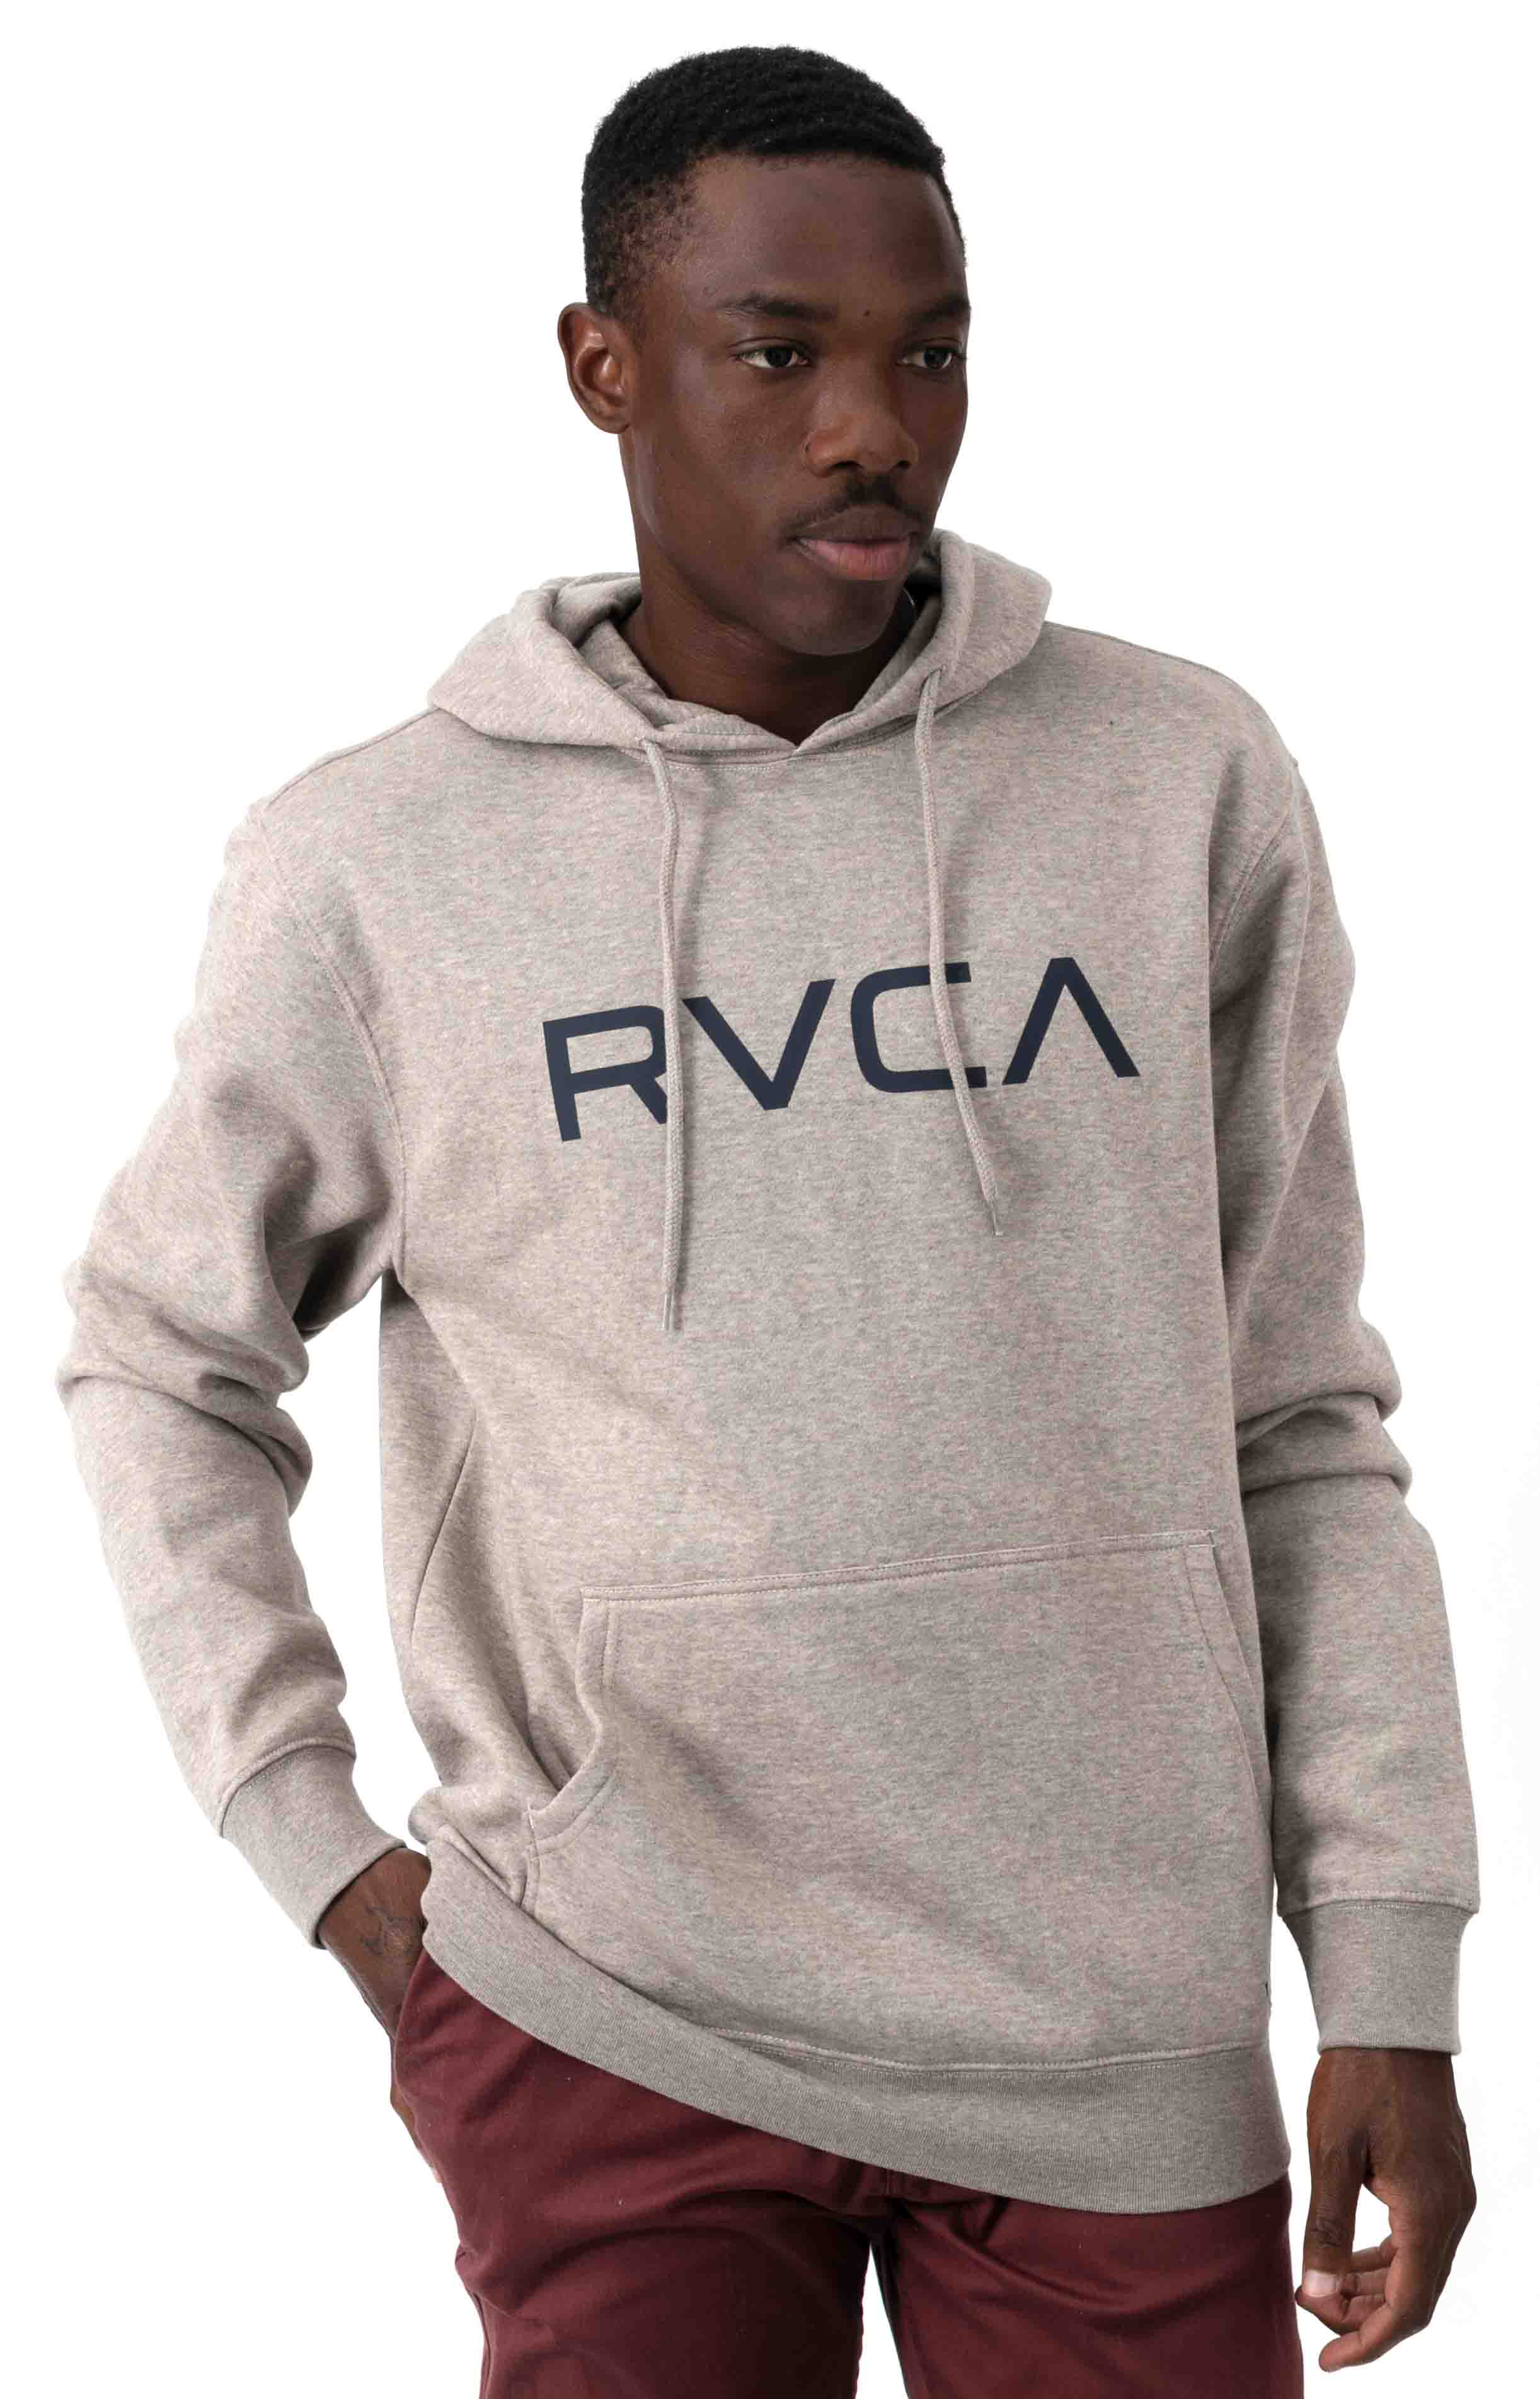 Big RVCA Pullover Hoodie - Khaki Heather